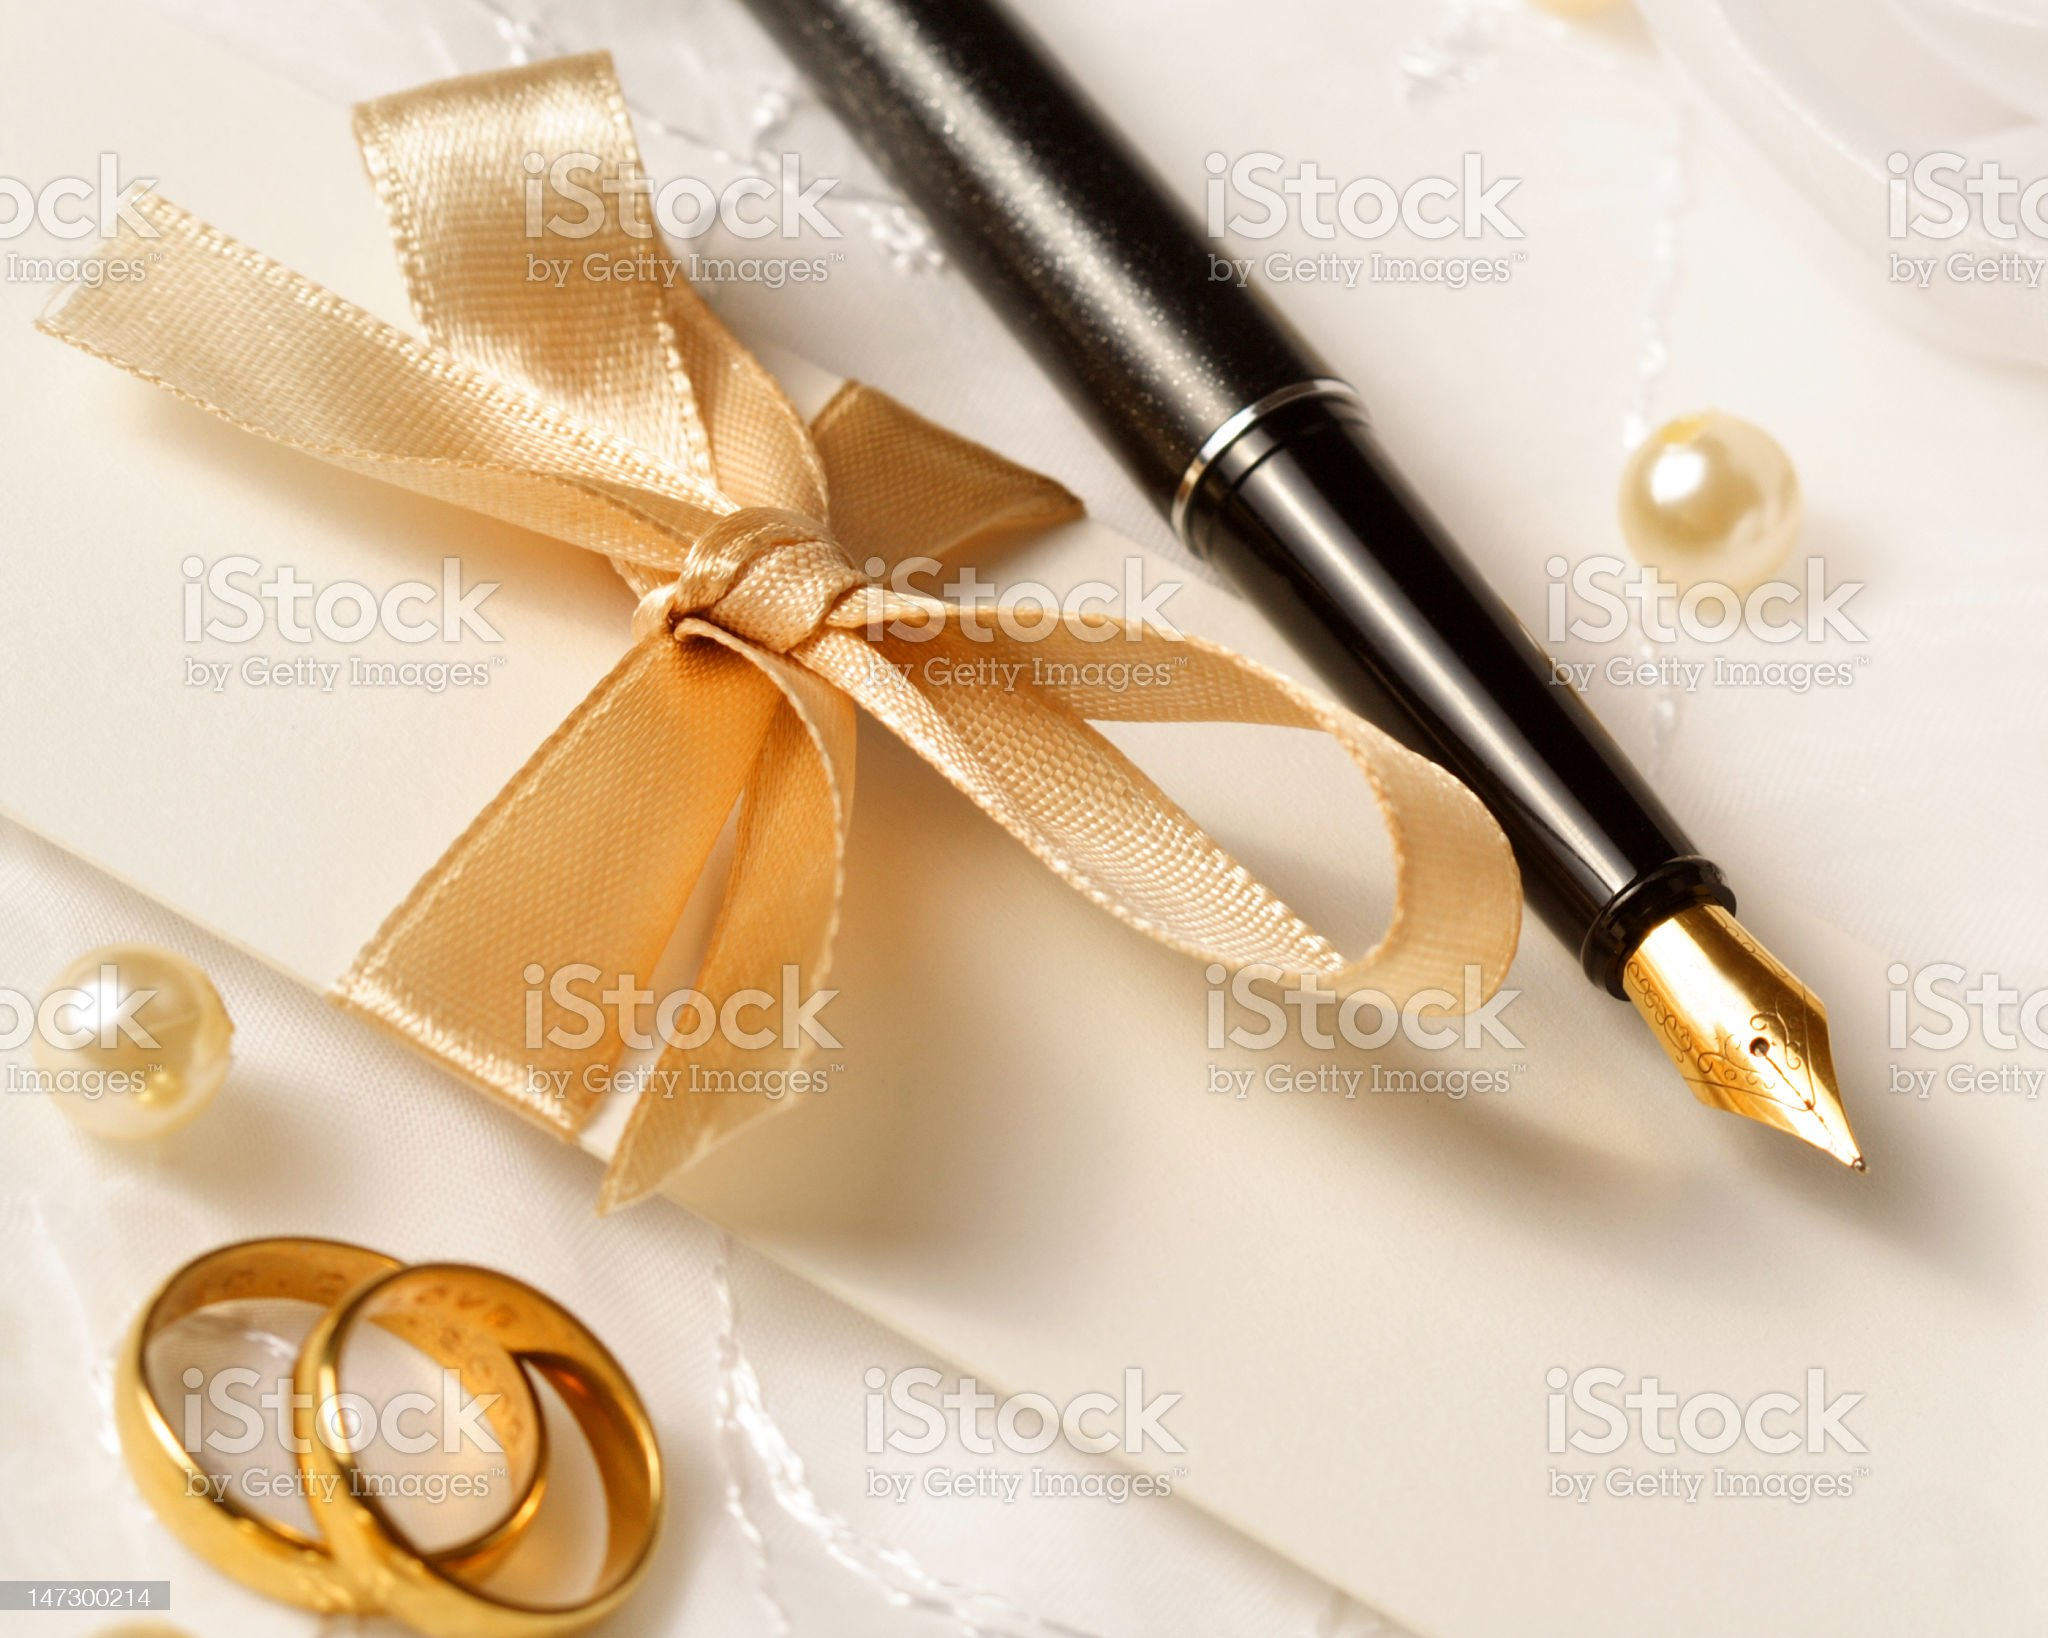 Fountain pen wedding invitation and gold wedding rings royalty-free stock photo